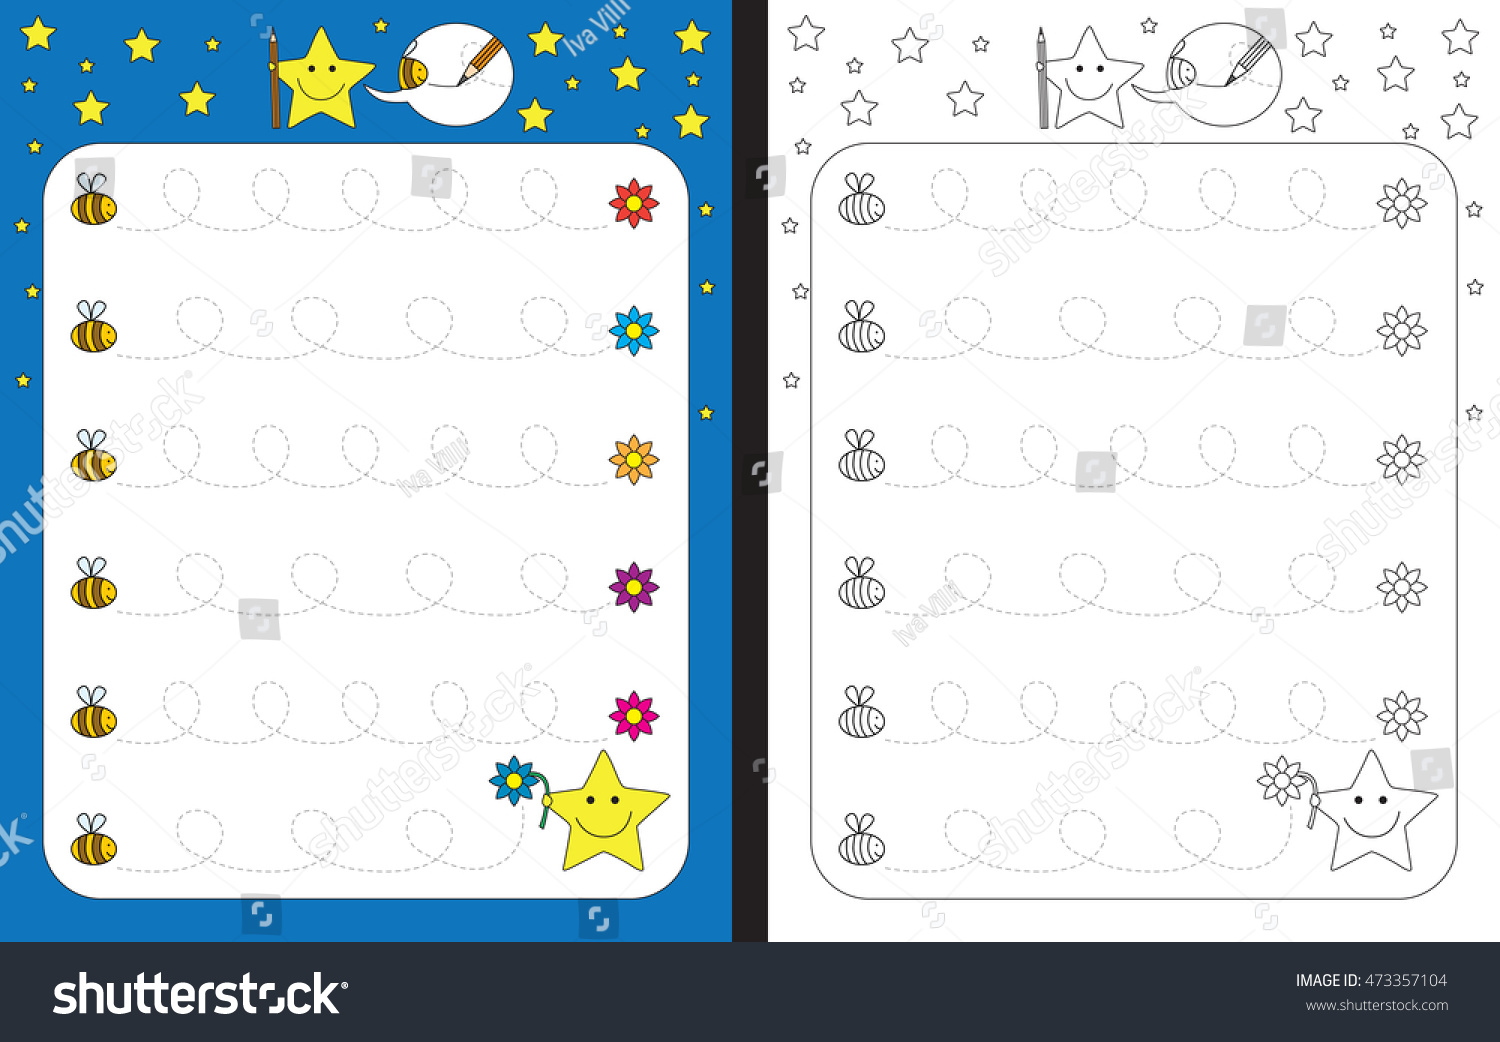 Preschool worksheet for practicing fine motor skills tracing dashed lines